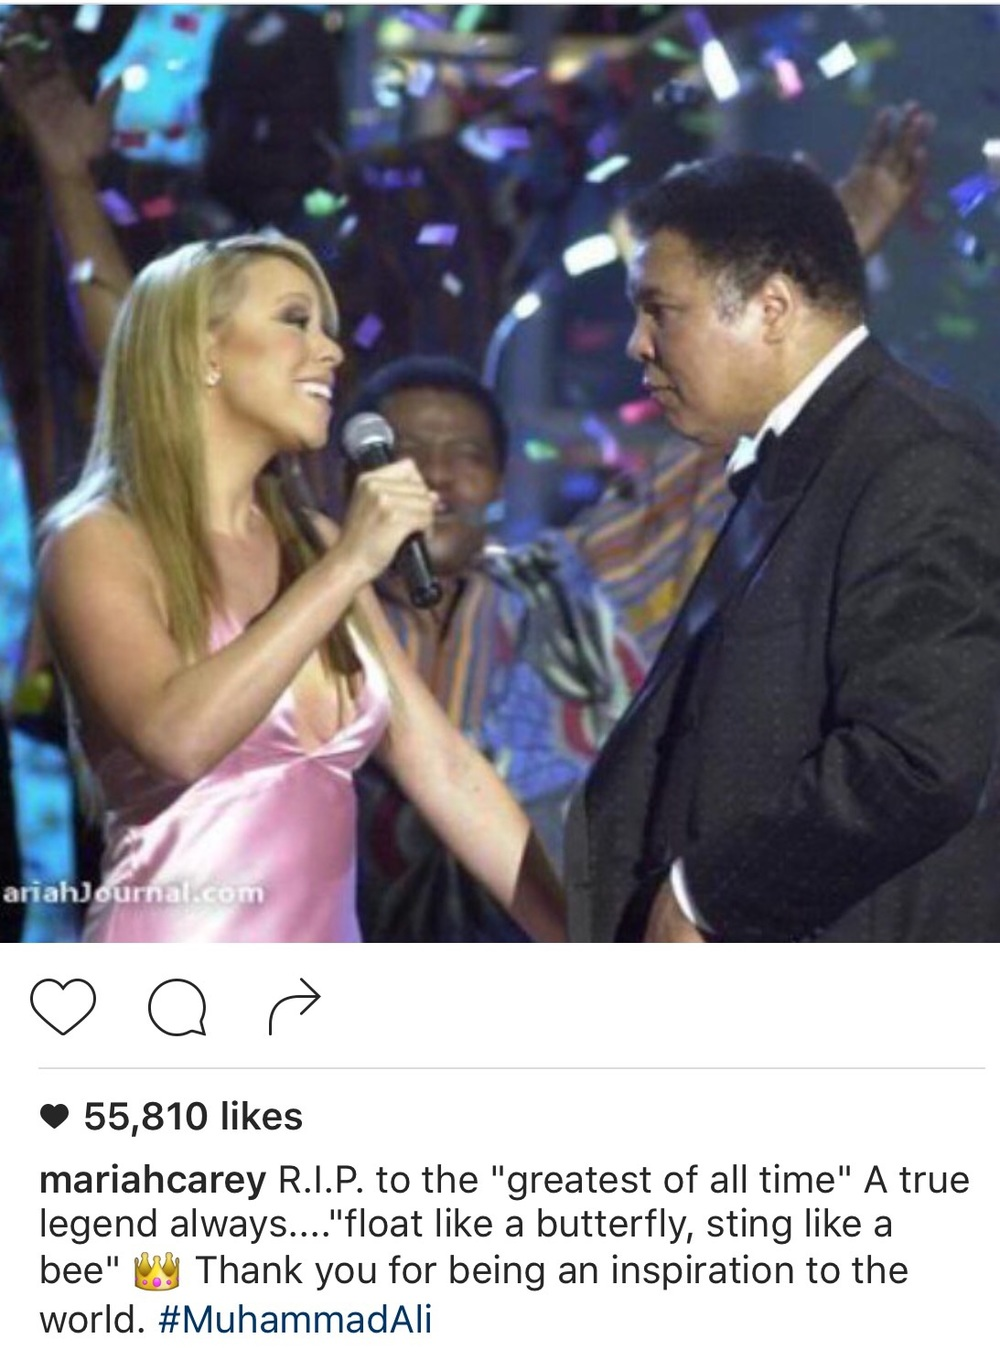 Mariah Carey Shared this photo on her social media